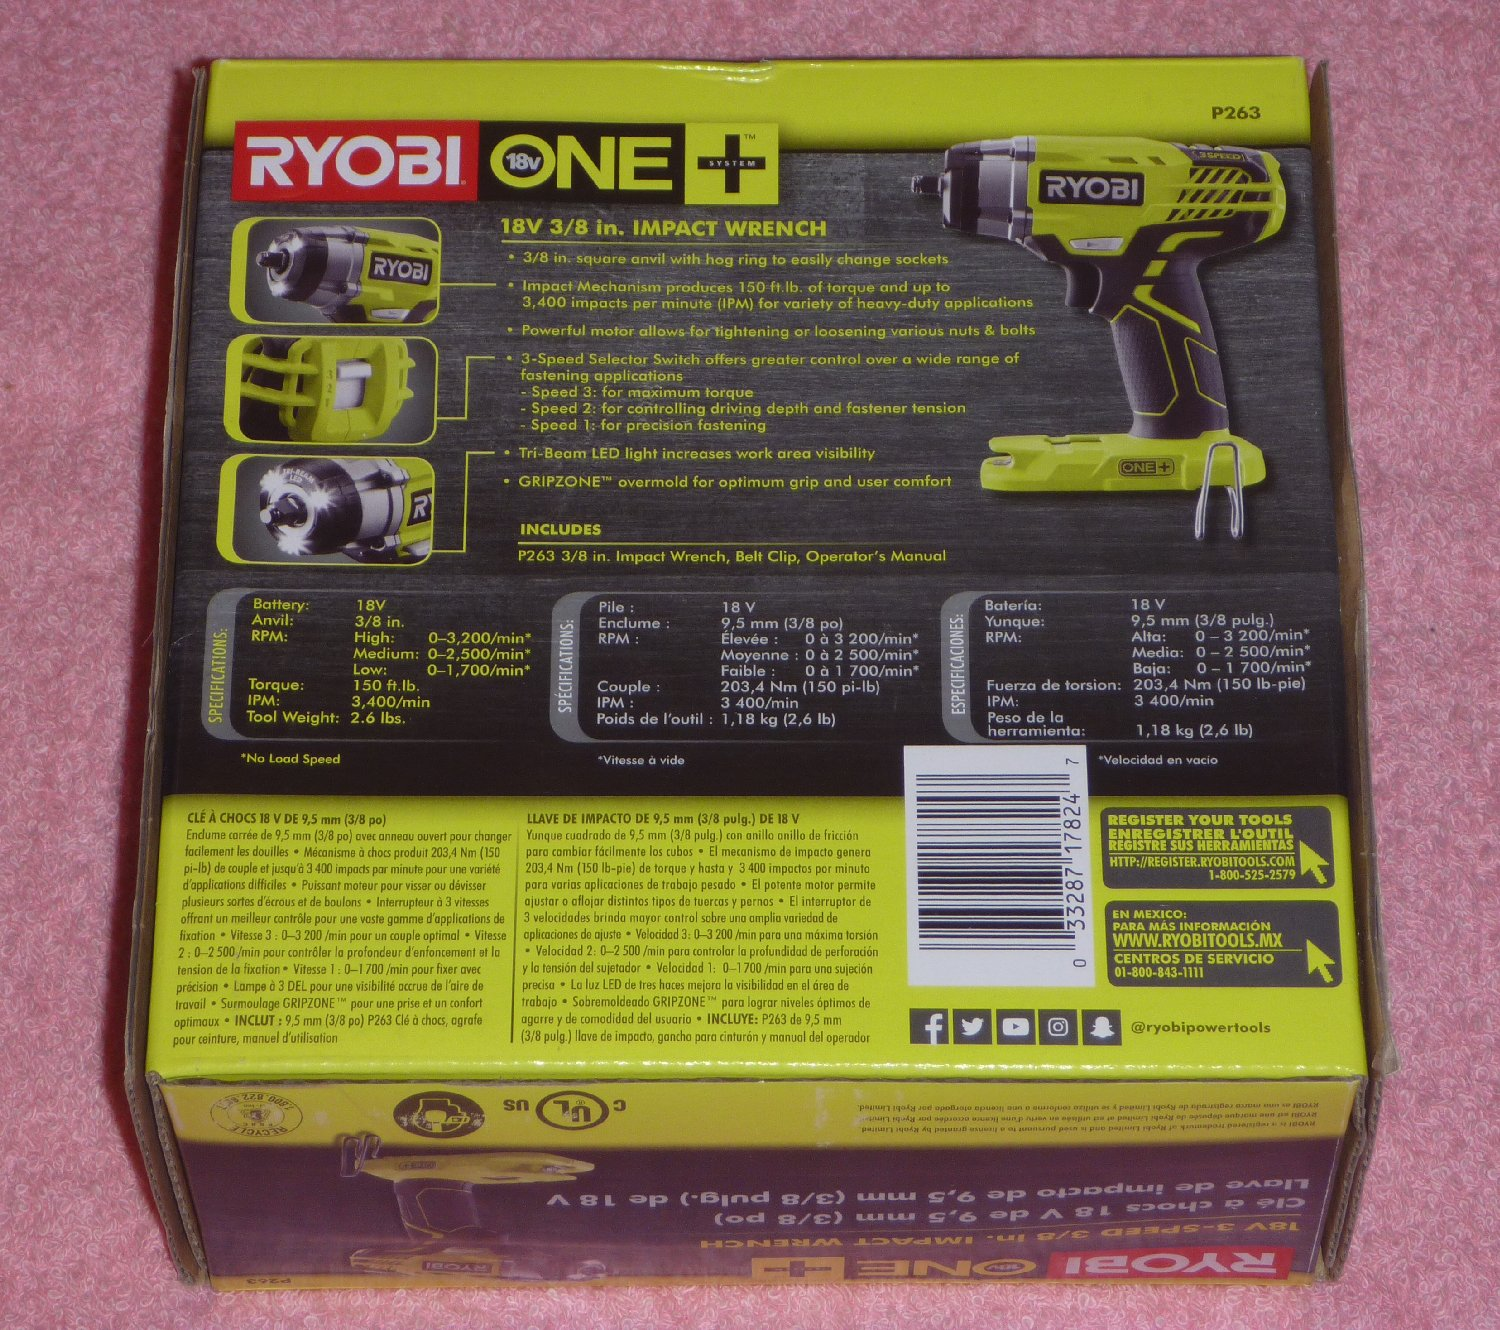 Details about Ryobi One+ P263 18v 3-Speed 3/8